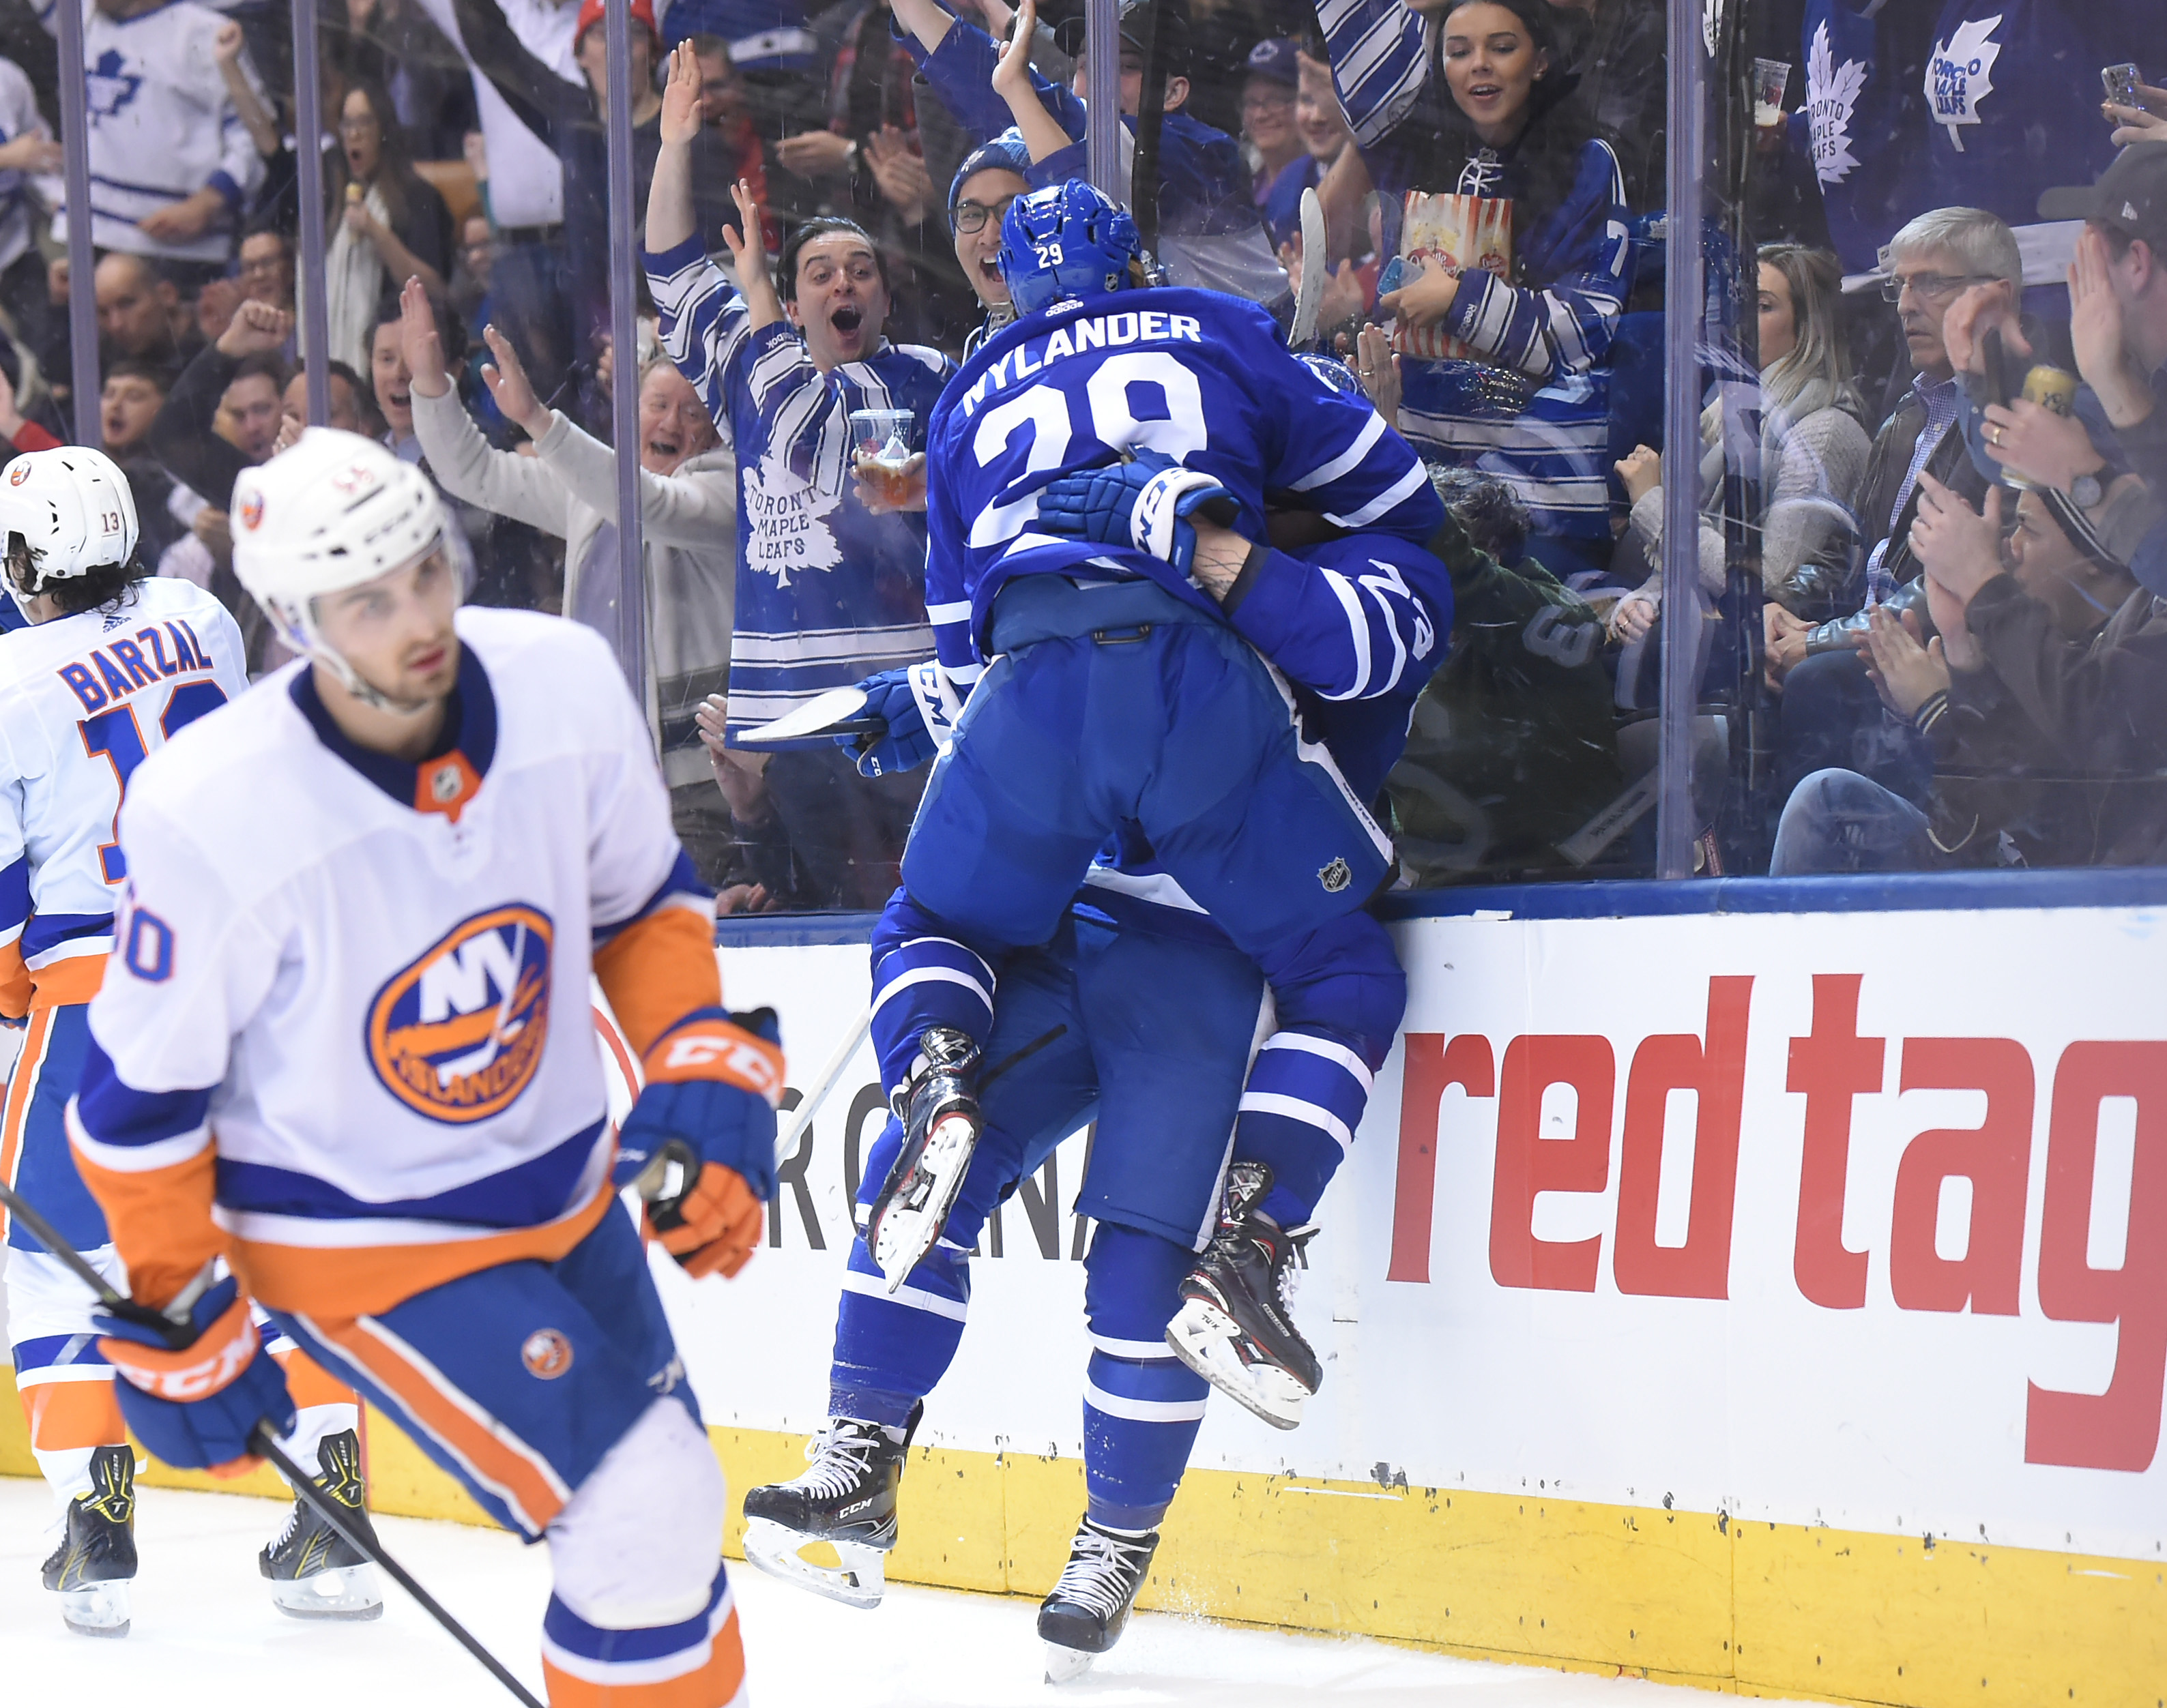 Jan 31, 2018; Toronto, Ontario, CAN; Toronto Maple Leafs forward William Nylander (29) jumps in celebration on defenceman Travis Dermott (23, obscured) after Dermott scored his first career NHL goal against New York Islanders i the second period at Air Canada Centre. Mandatory Credit: Dan Hamilton-USA TODAY Sports